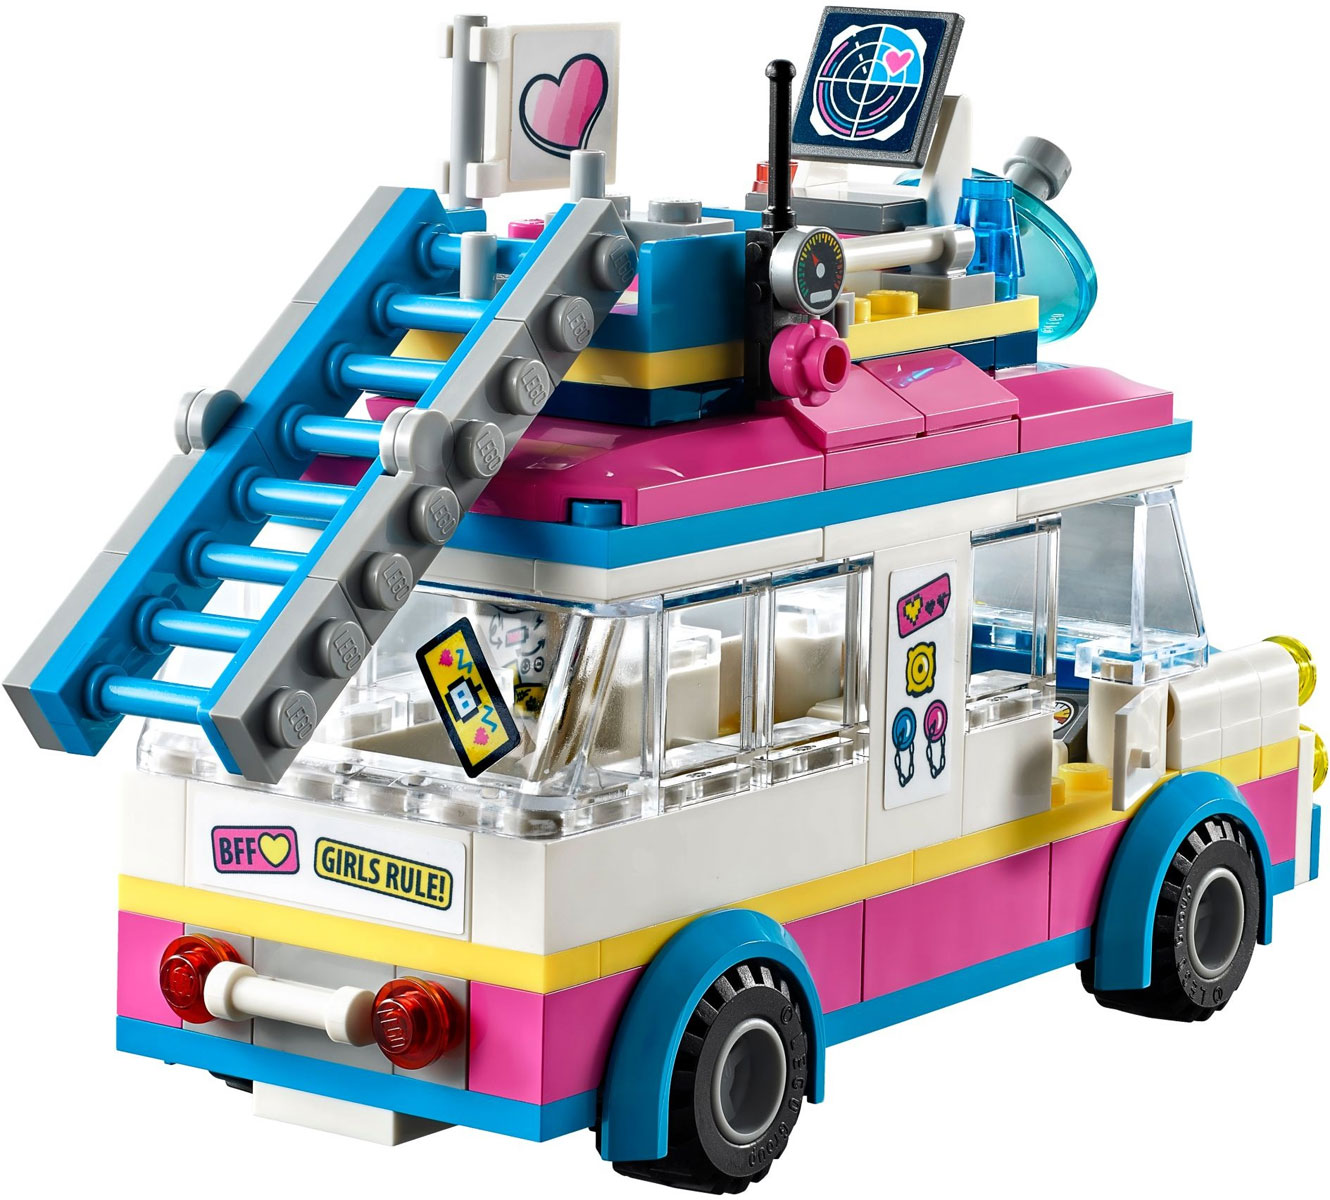 lego 41333 lego friends olivia 39 s mission vehicle olivia 39 s mission vehicle toymania lego. Black Bedroom Furniture Sets. Home Design Ideas